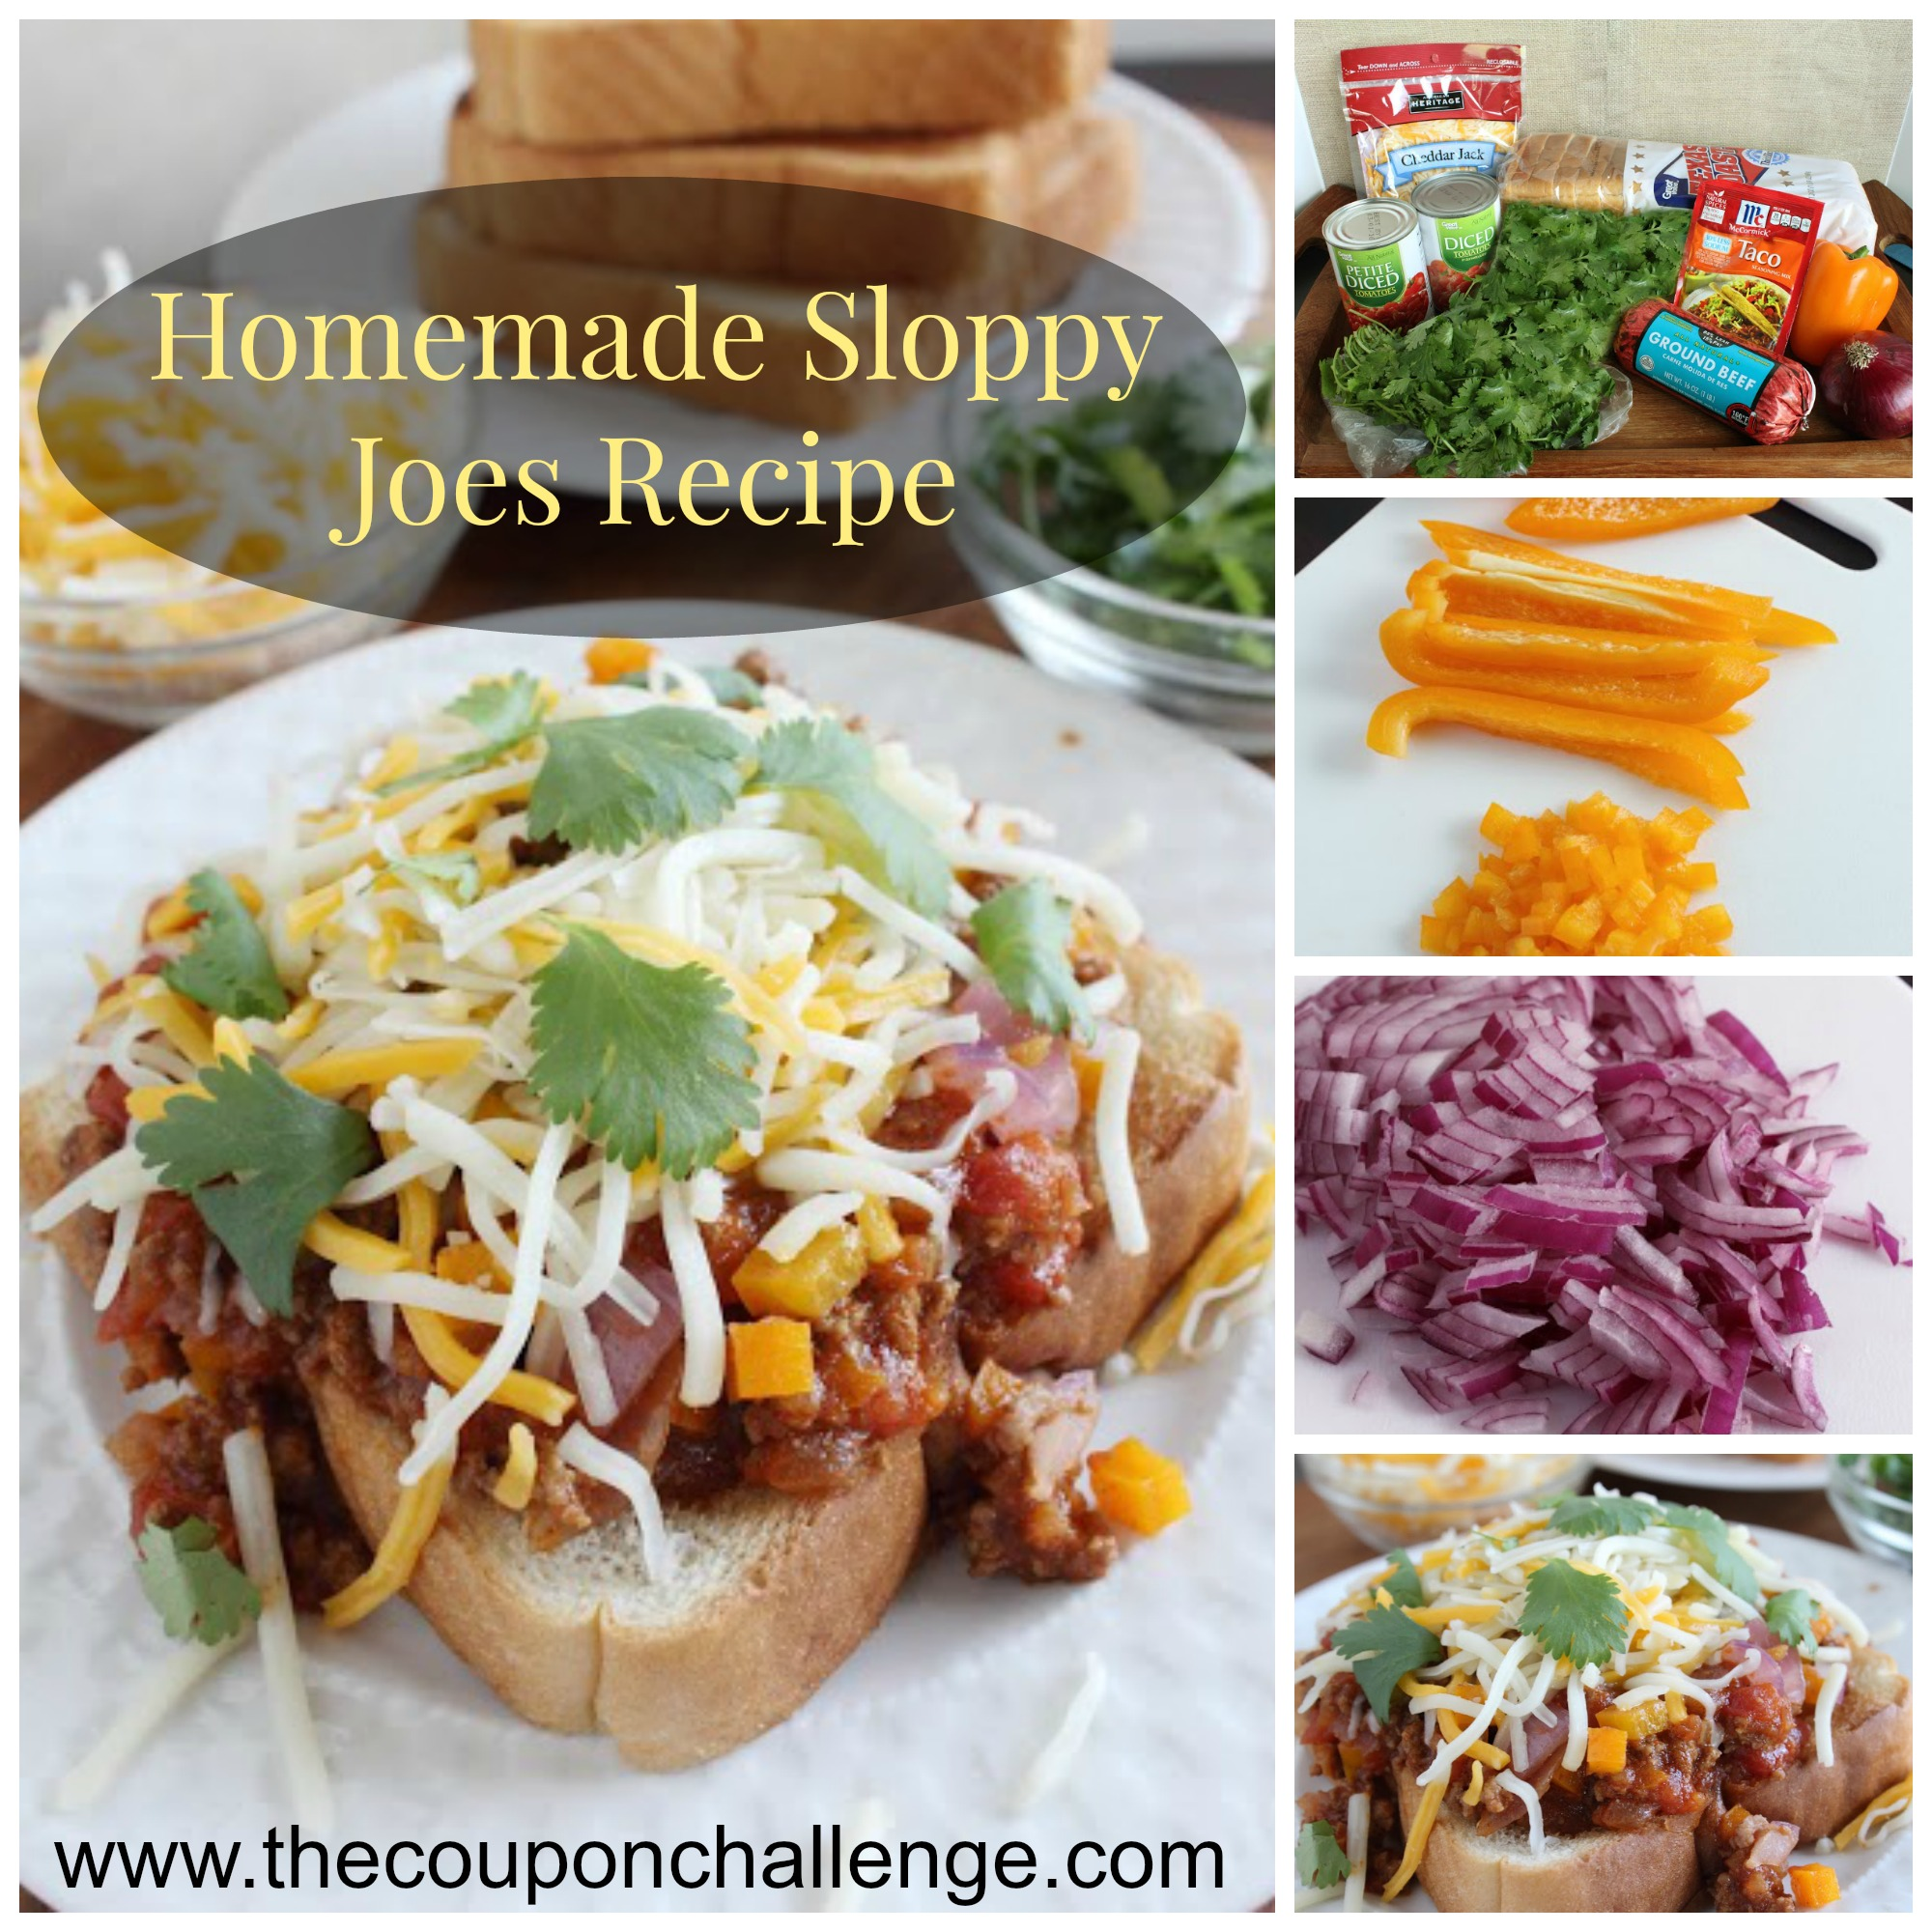 Homemade Sloppy Joes Recipe Collage